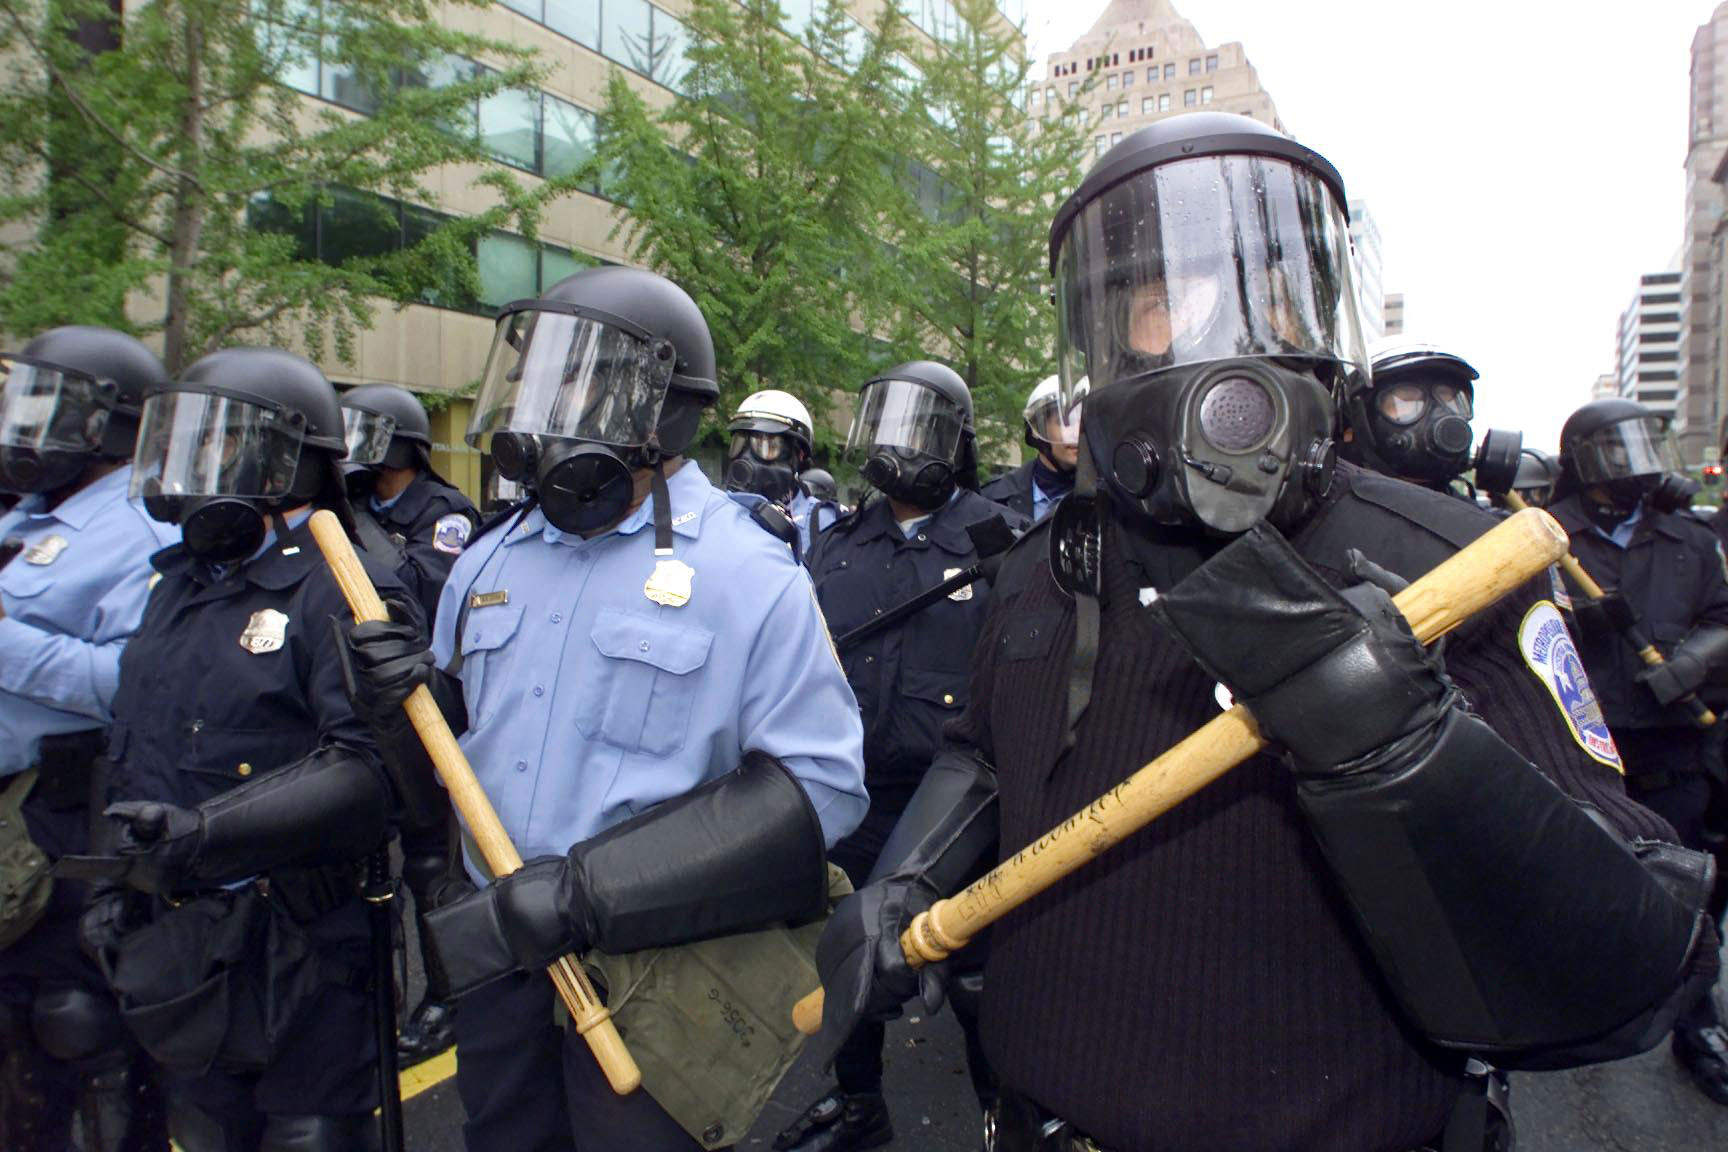 Washington D.C. police officers gather outside the World Bank as protesters mass, April, 2000.